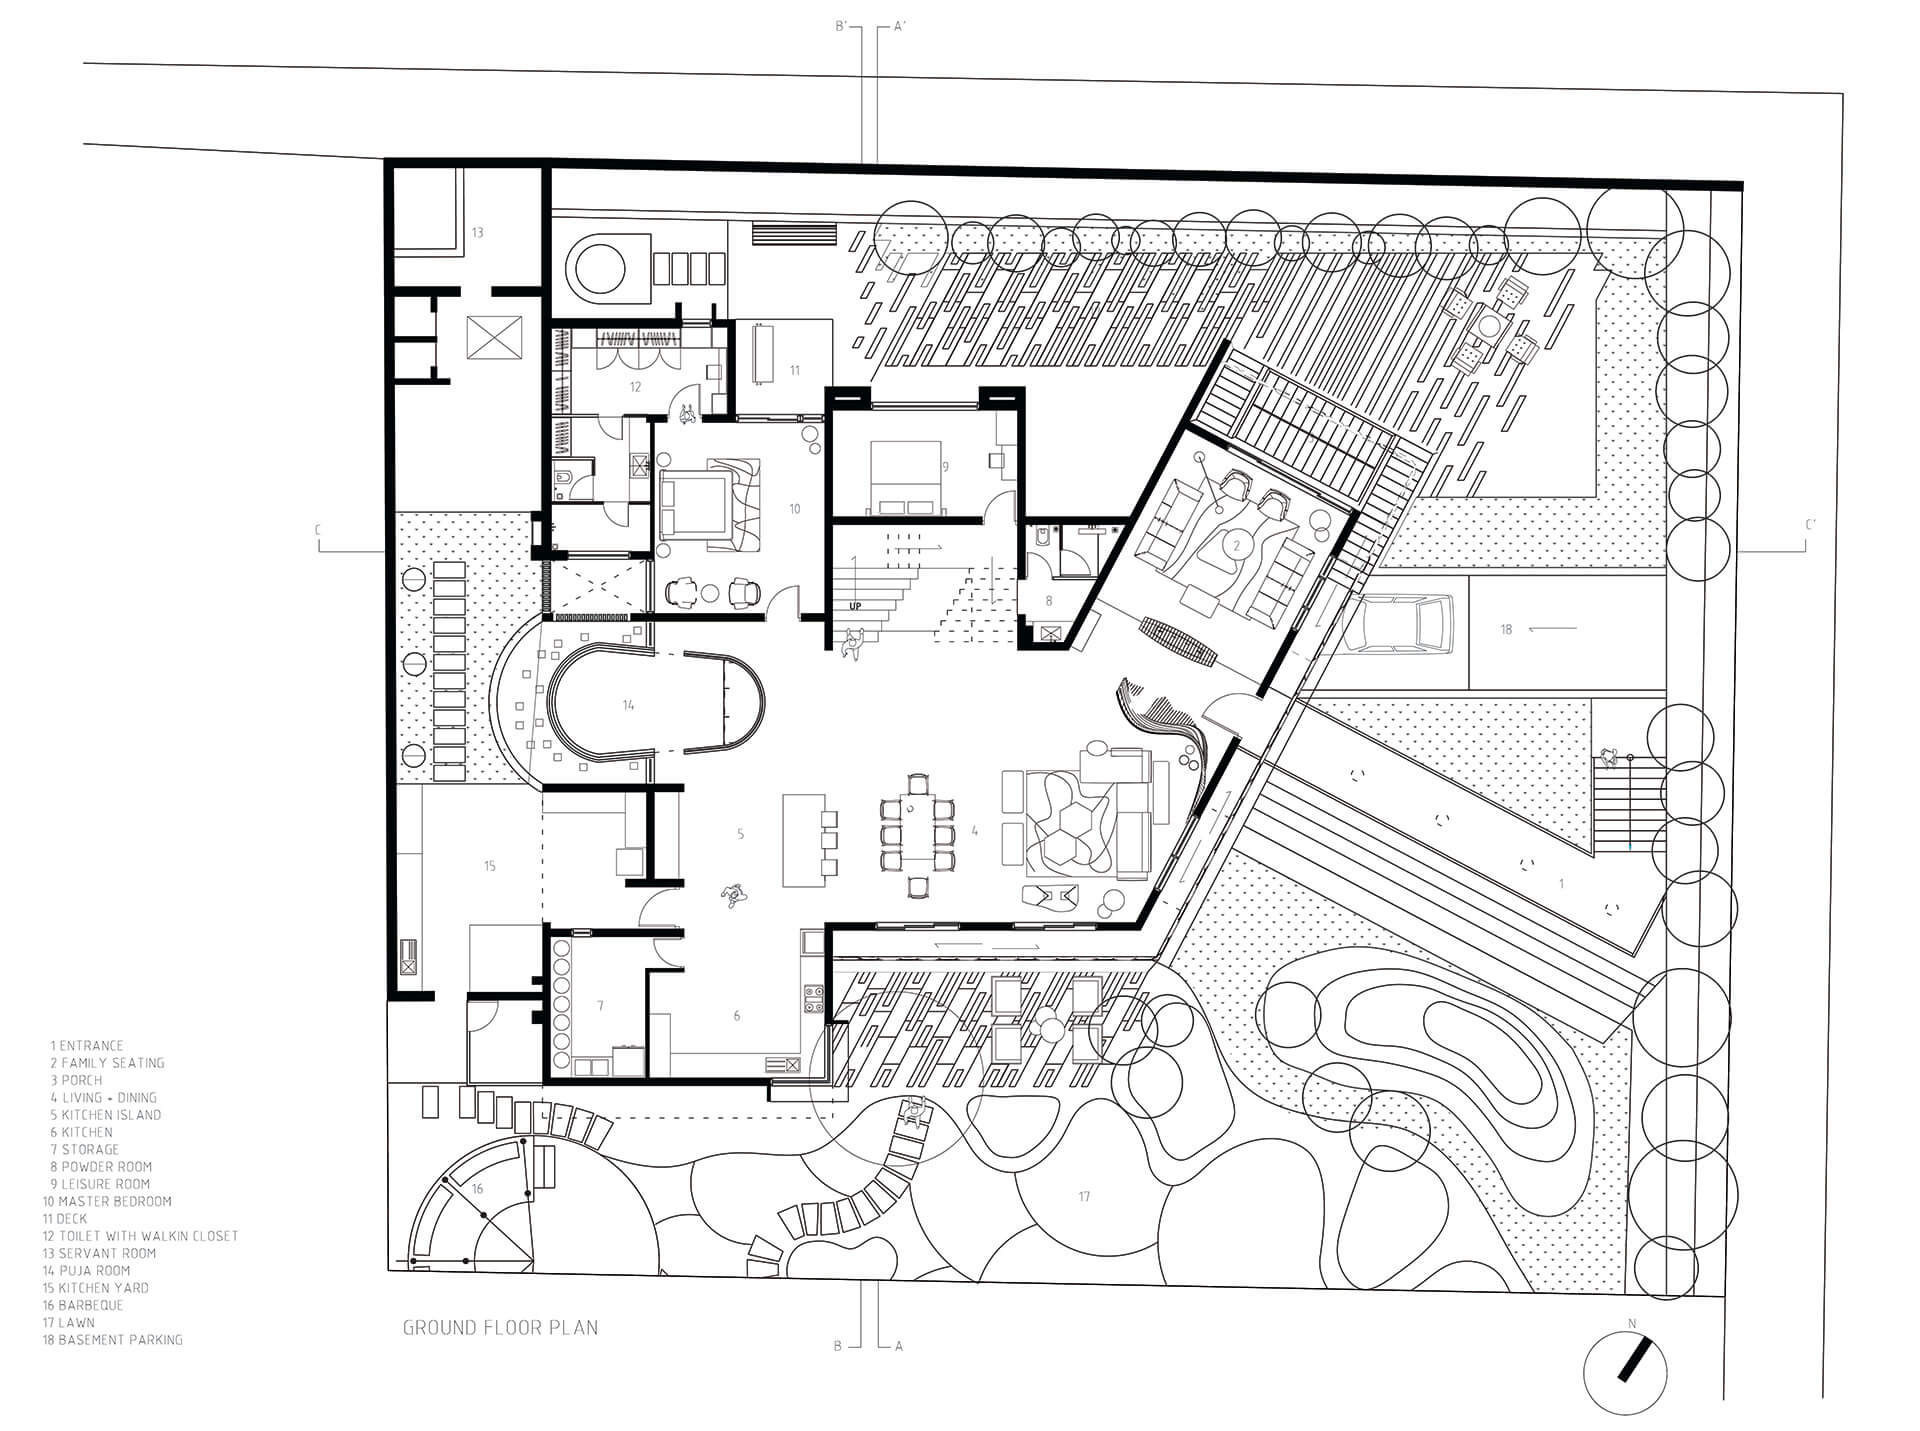 Ground floor plan of Hive | Hive | Openideas Architects| STIRworld